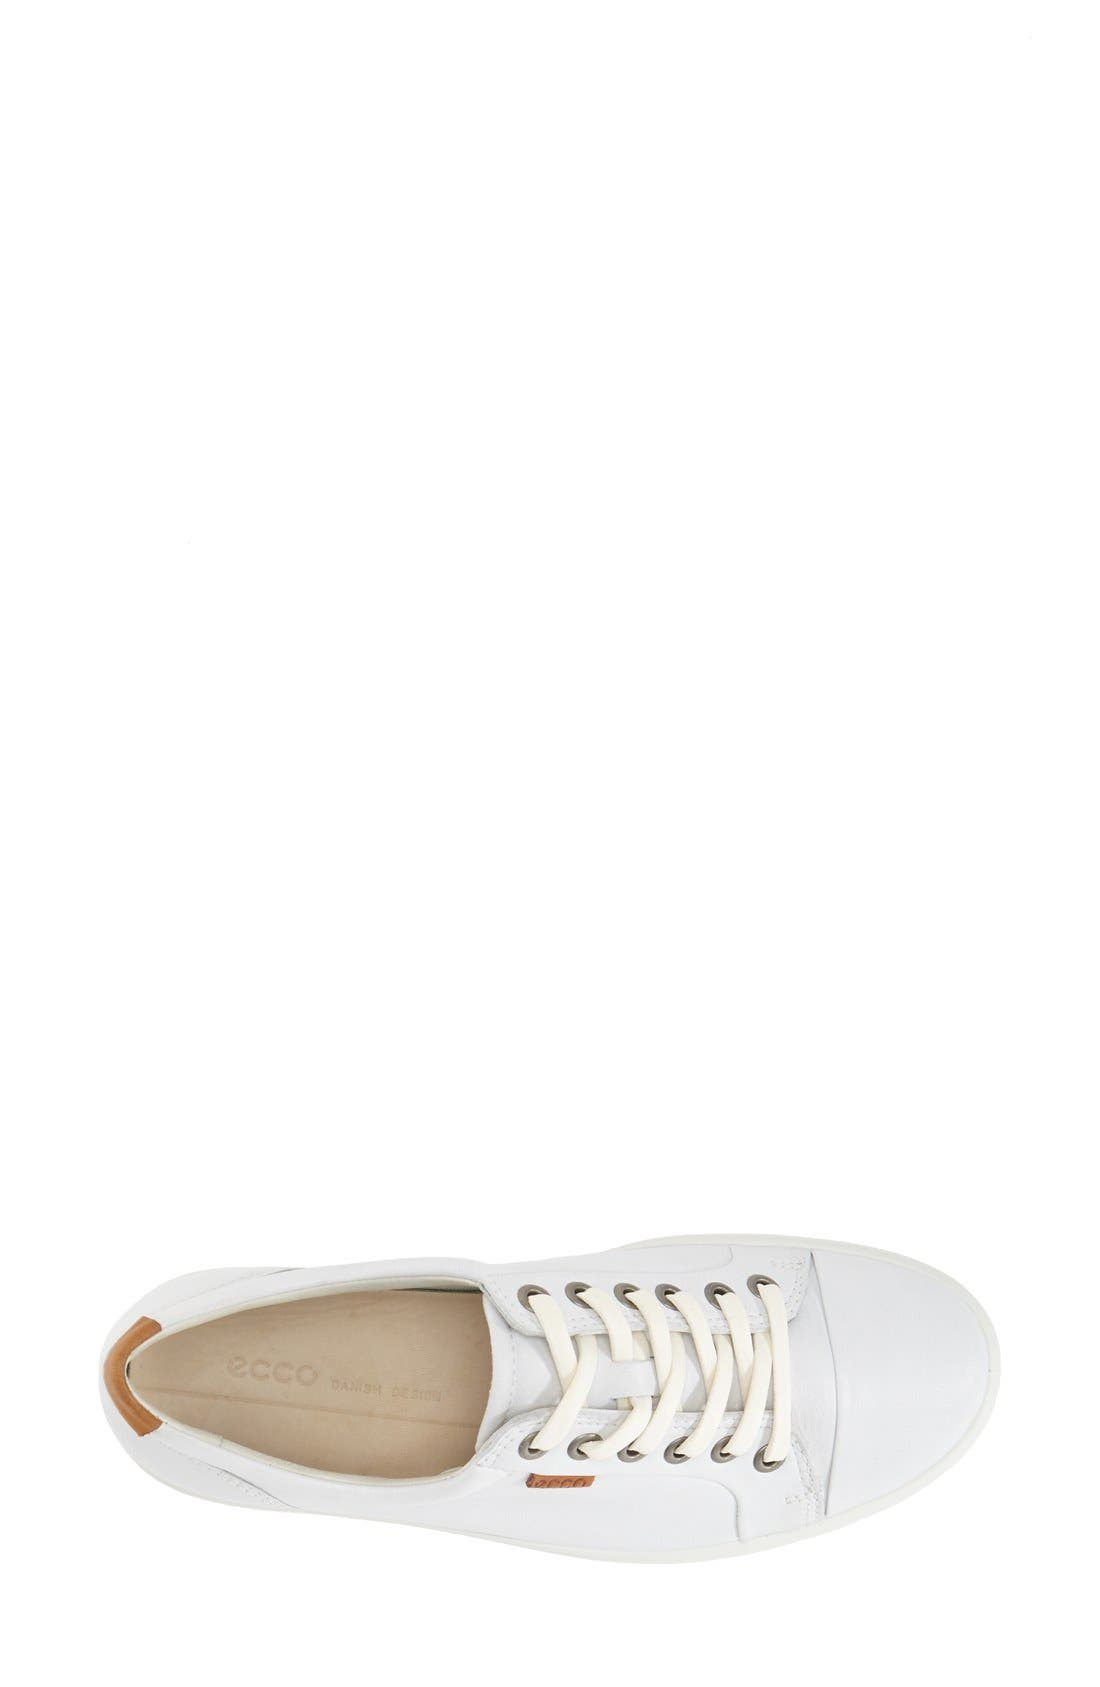 'Soft 7' Cap Toe Sneaker,                             Alternate thumbnail 3, color,                             White